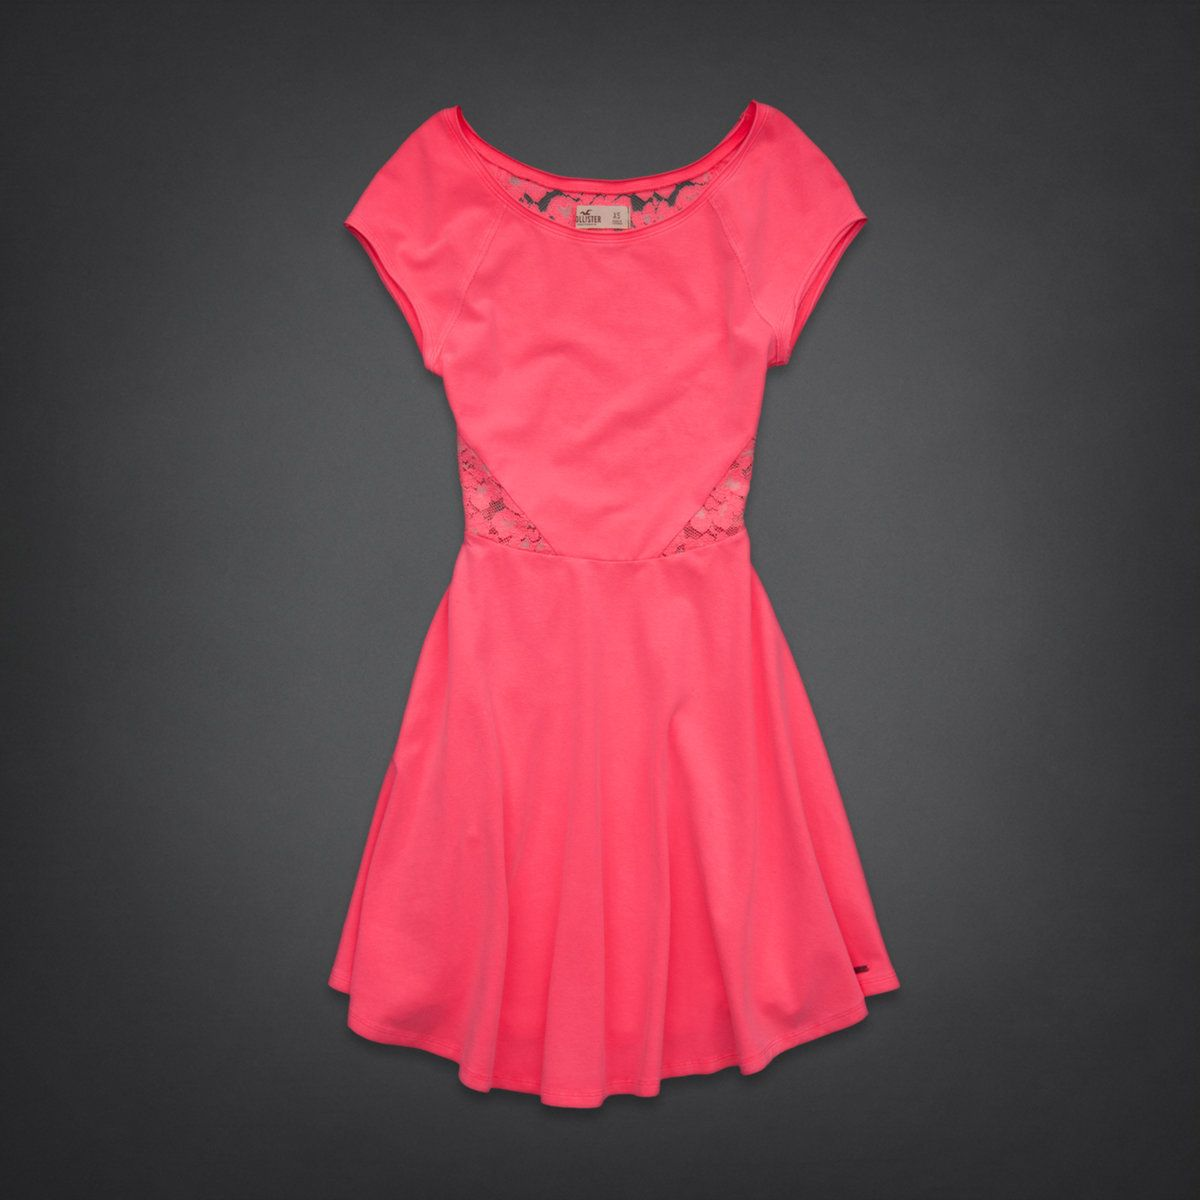 Girls Dresses & Rompers | Clearance | Hollister Co.